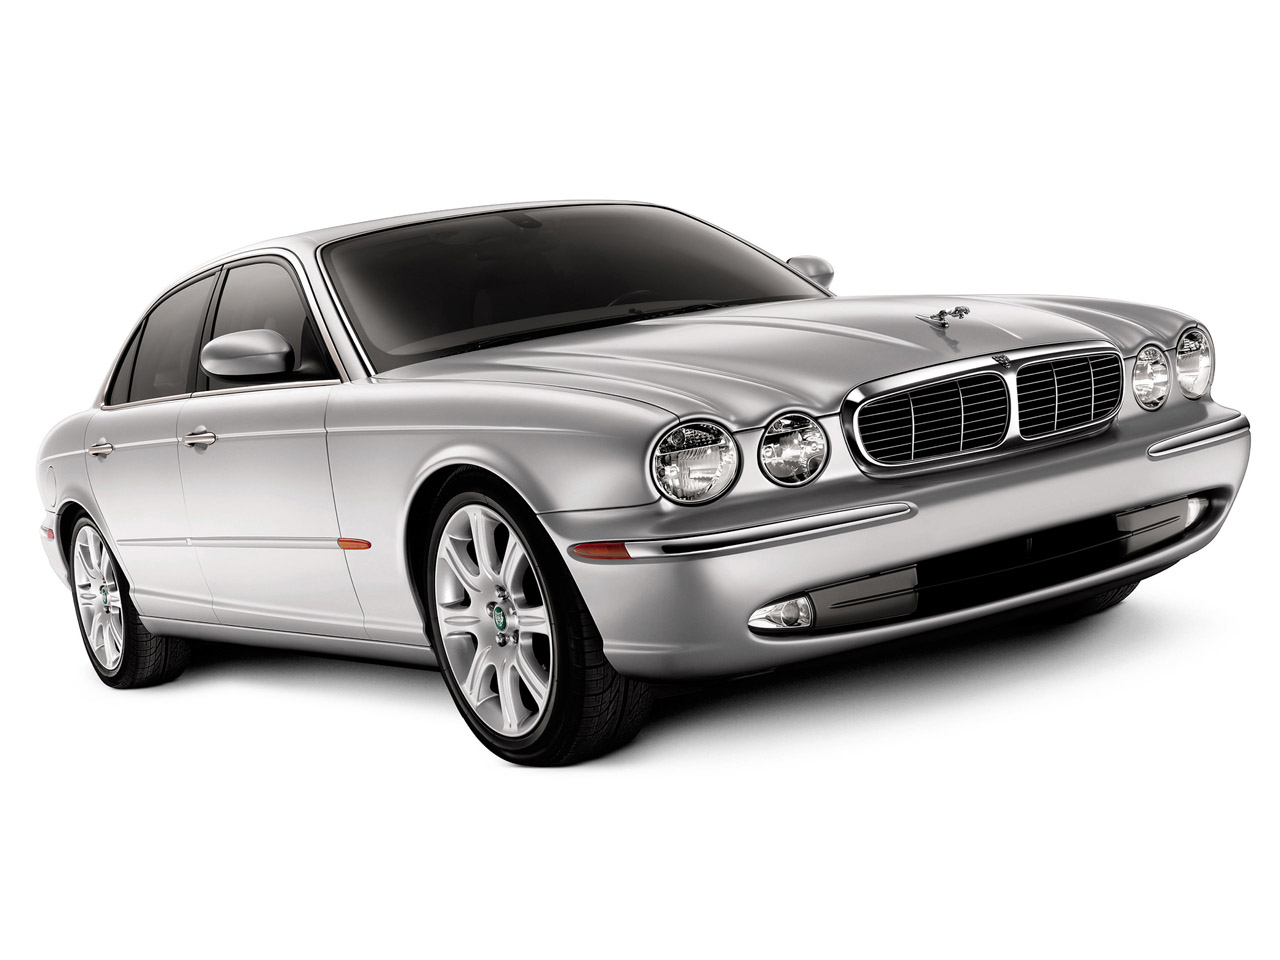 Jaguar xj8 photo - 3